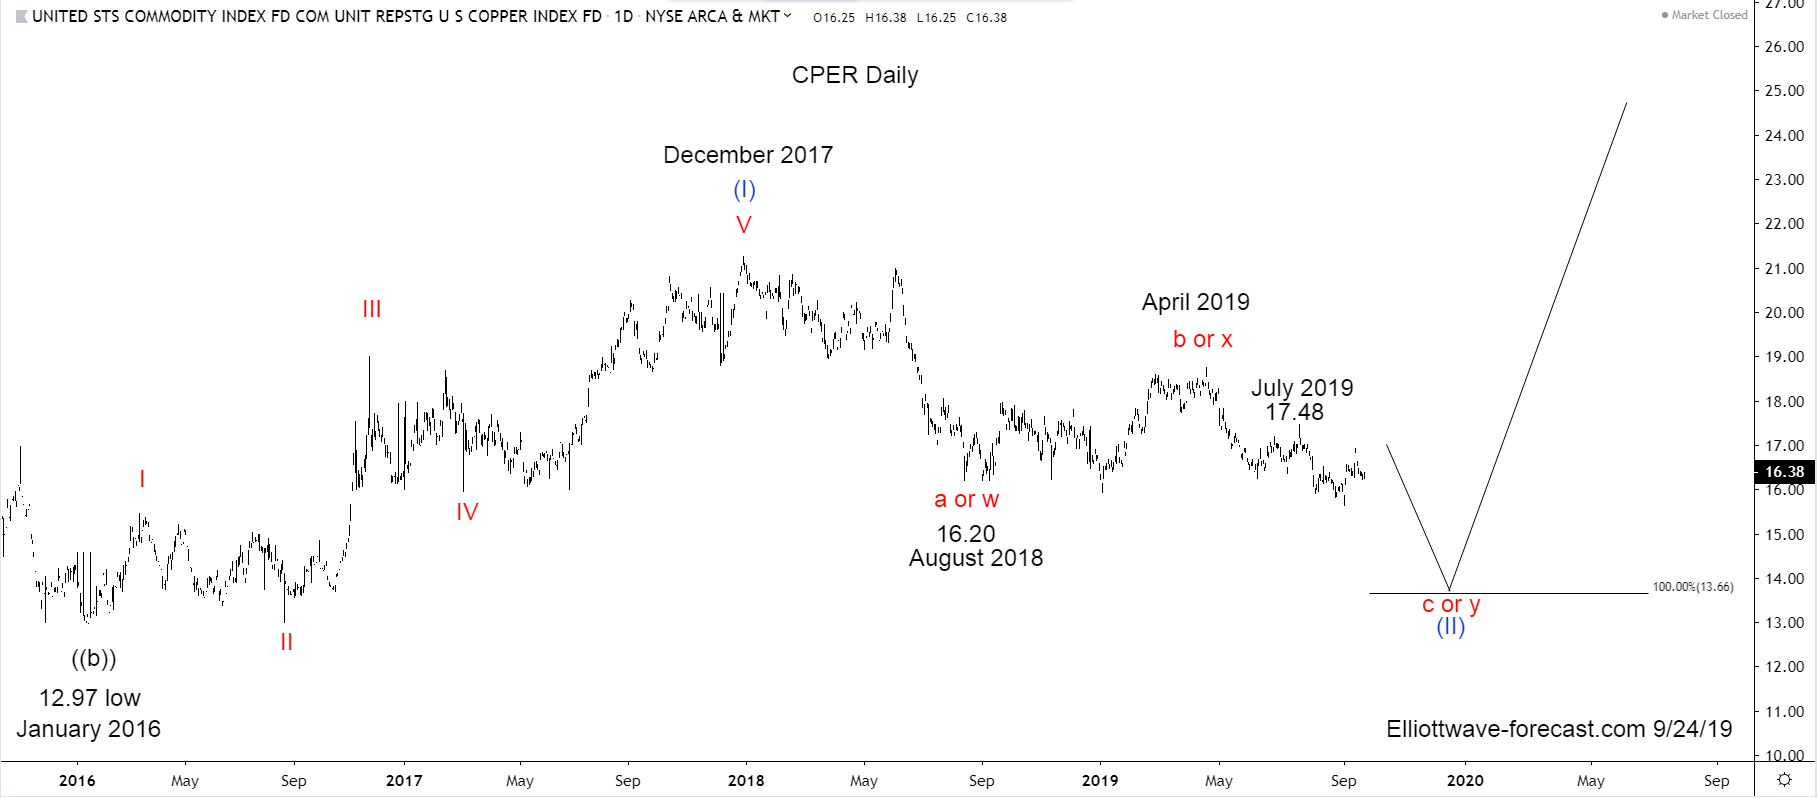 CPER Copper Index Tracker Long Term Cycles & Elliott Wave